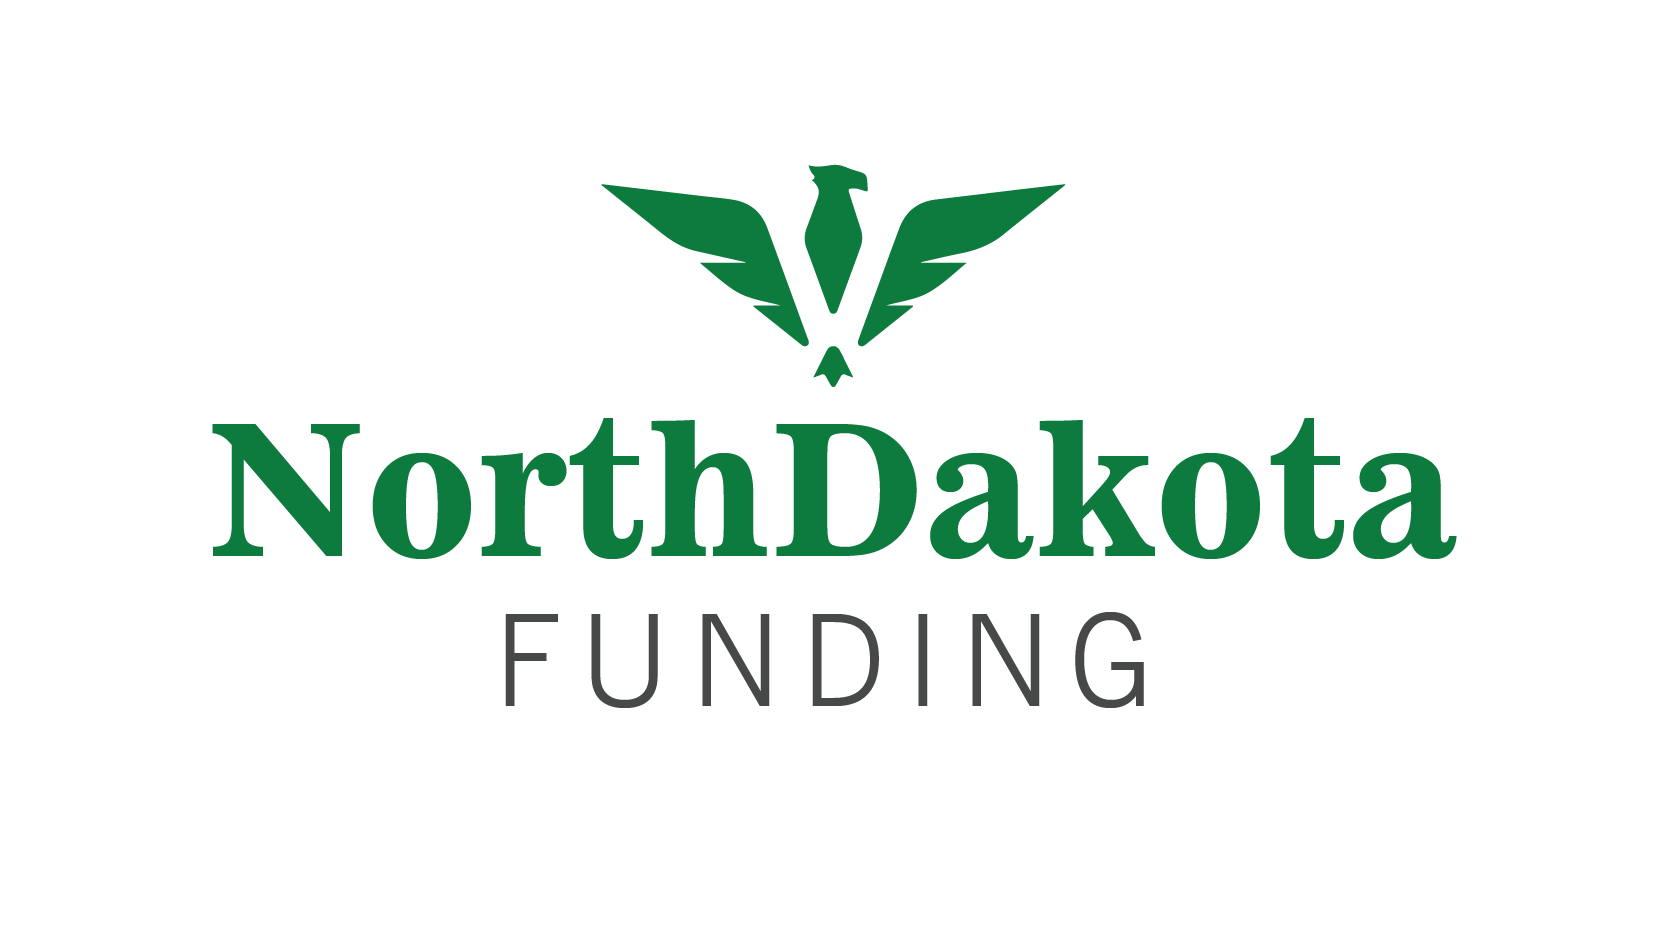 NorthDakotaFunding.com